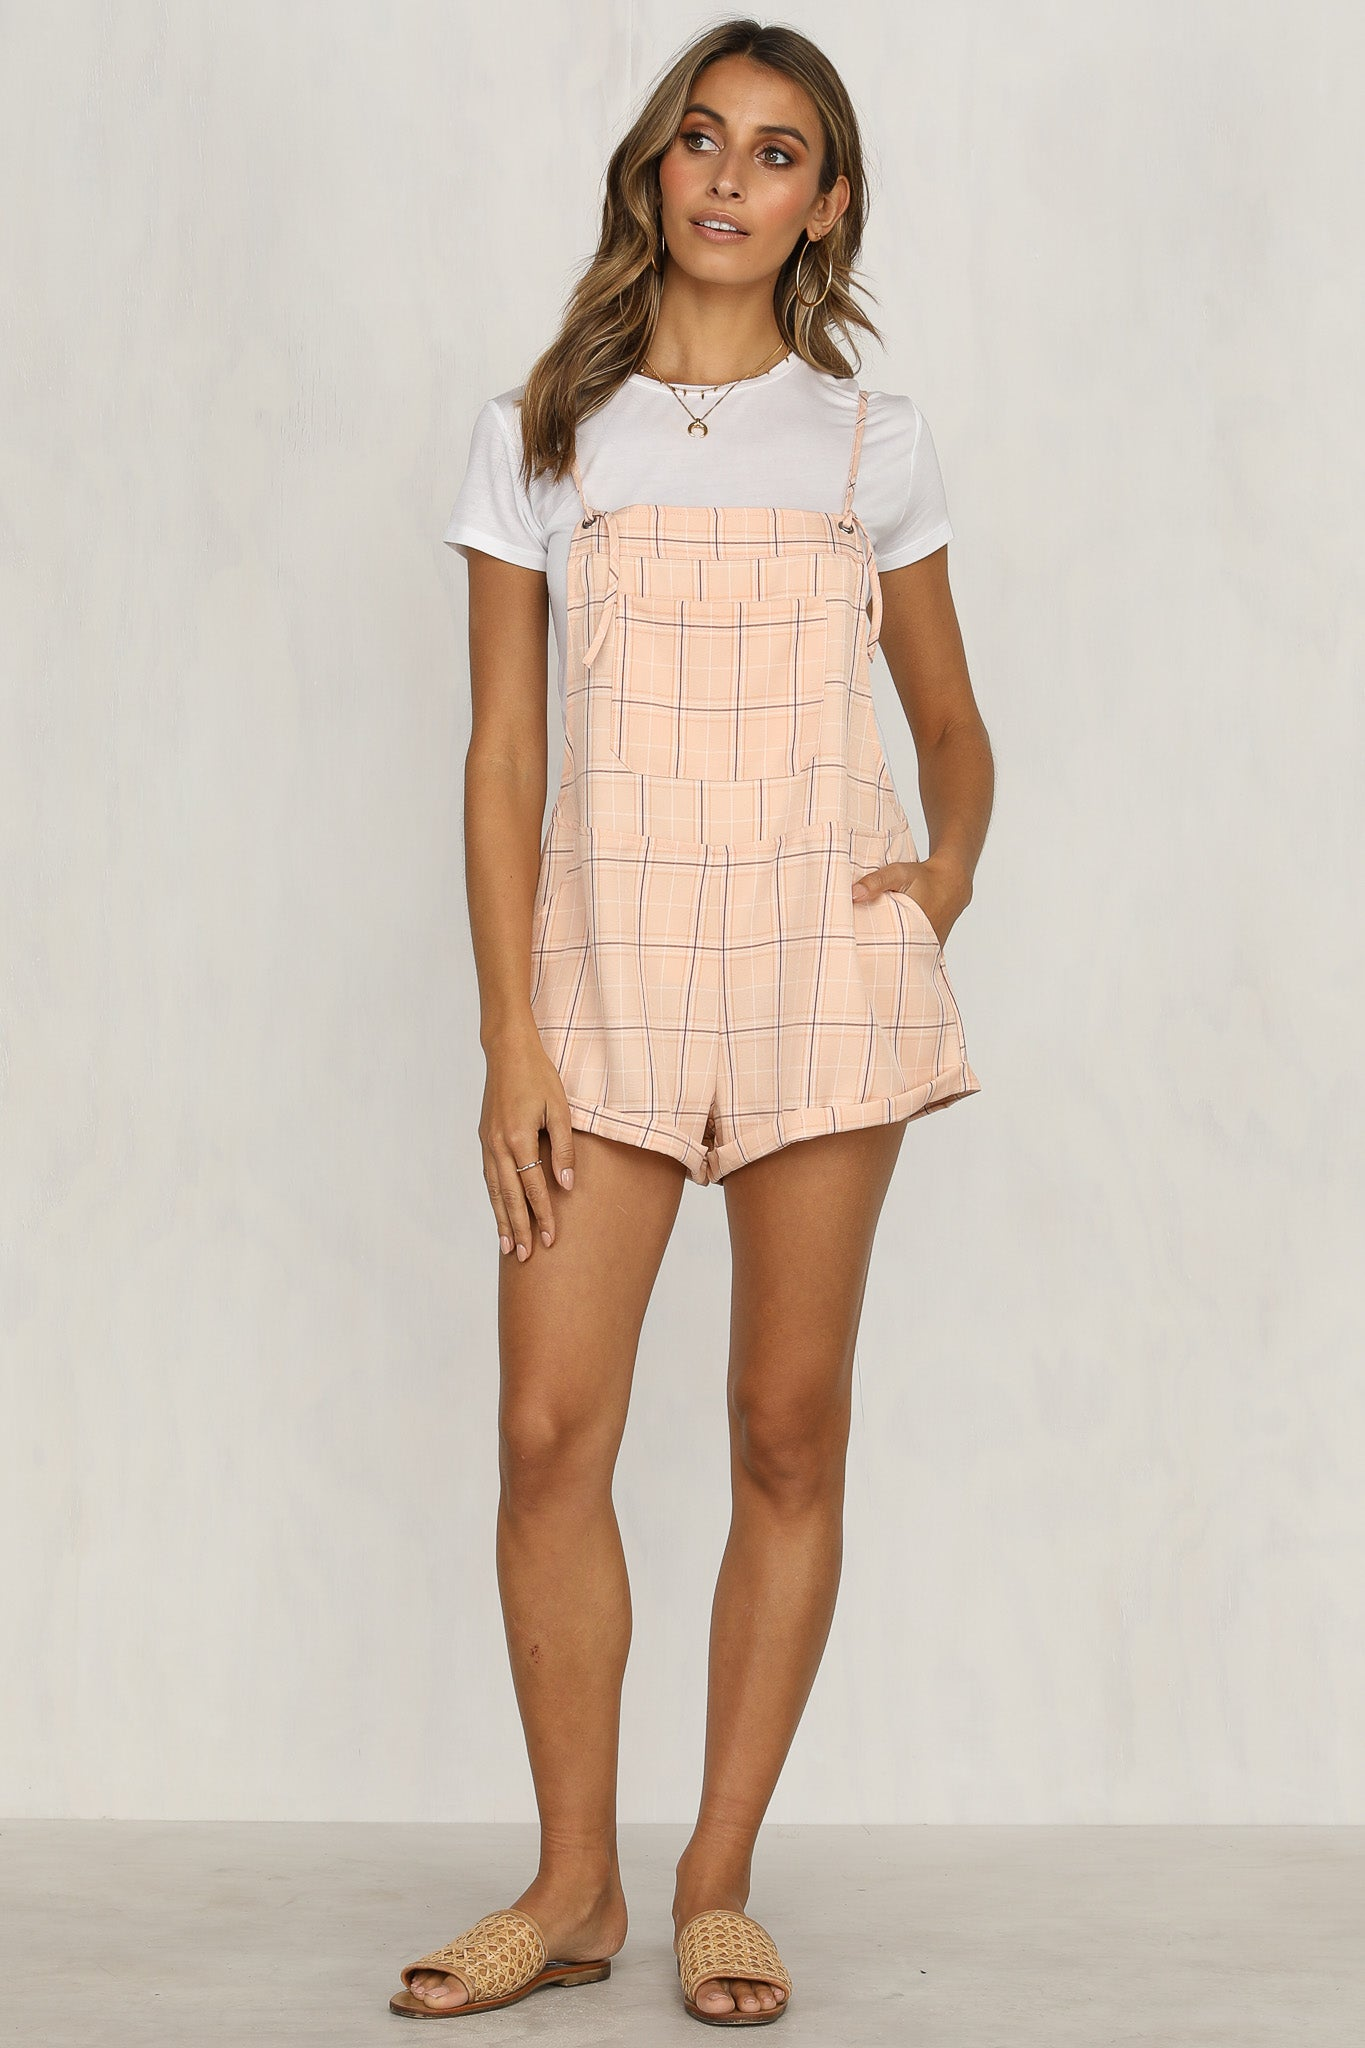 Say Hello Playsuit